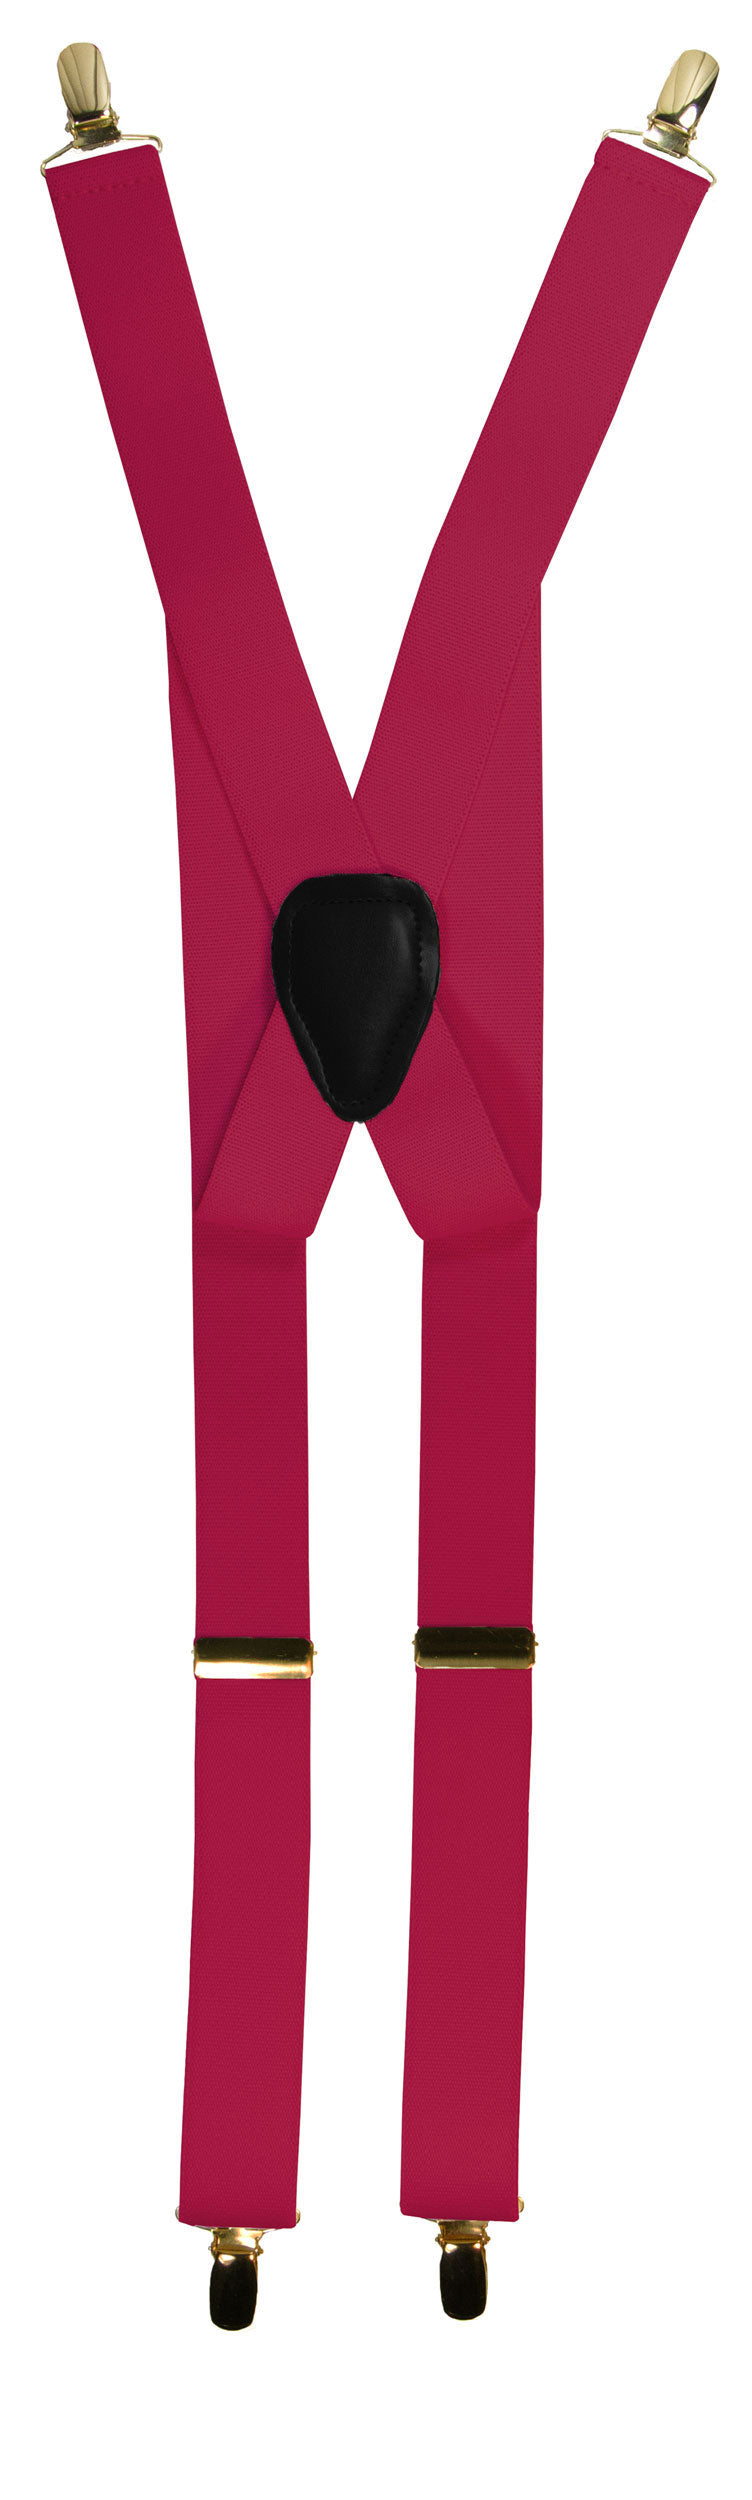 Hot Pink Clip End Suspenders